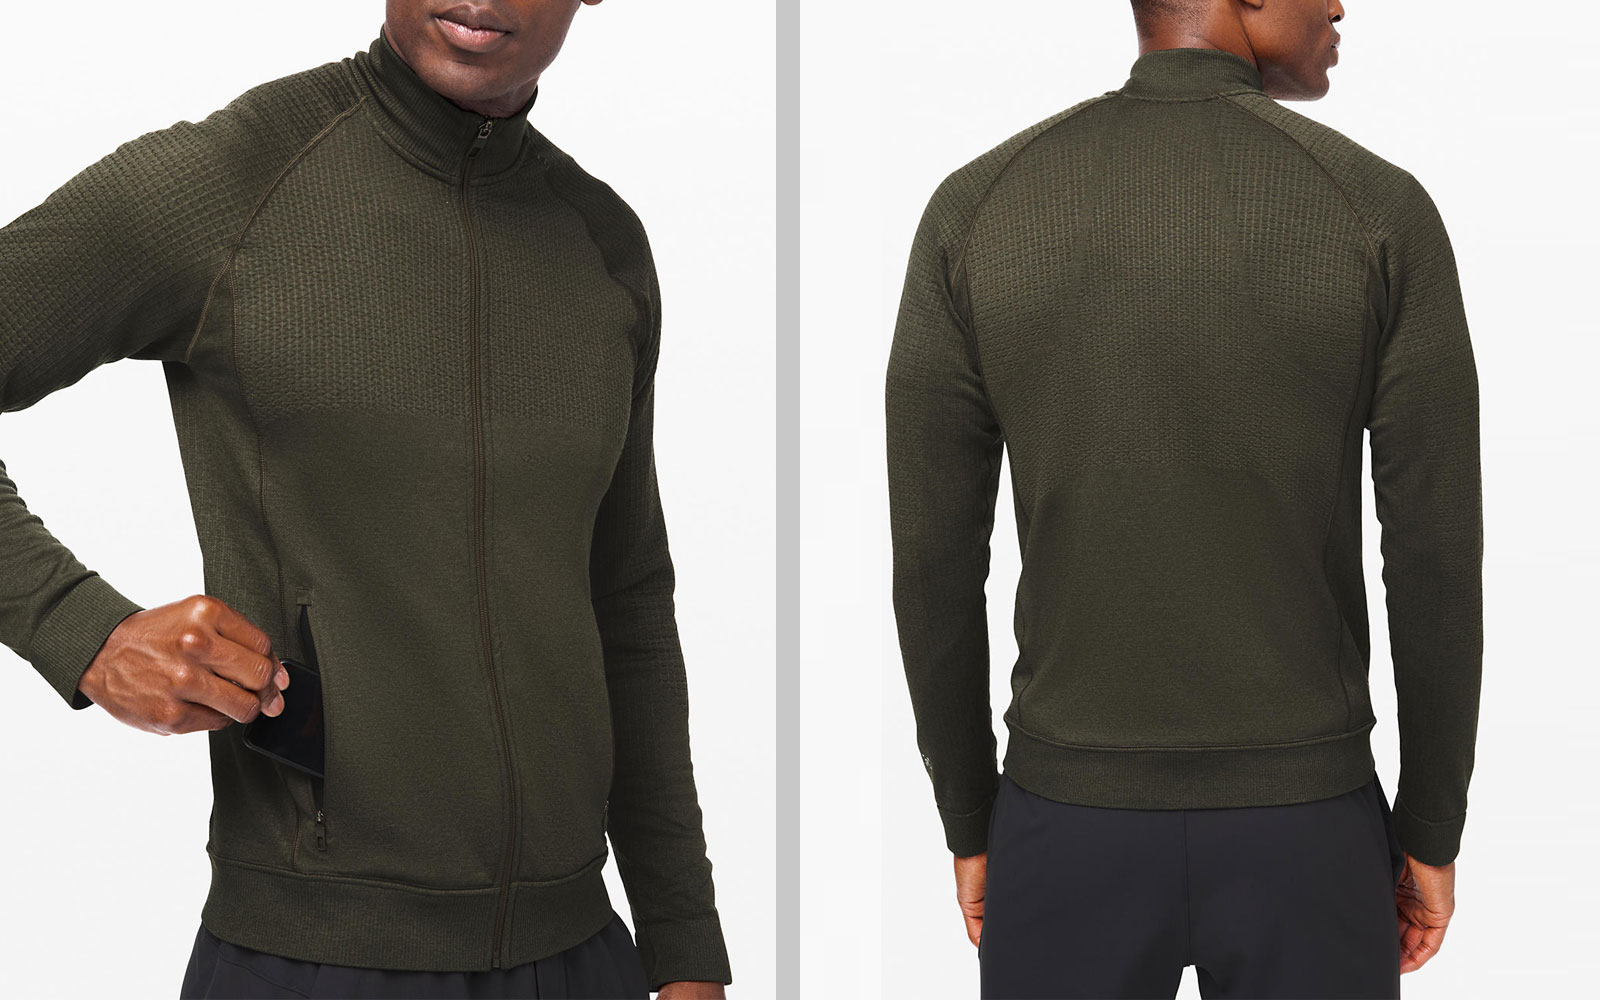 Men's Dark Green Merino Wool Jacket Front and Back